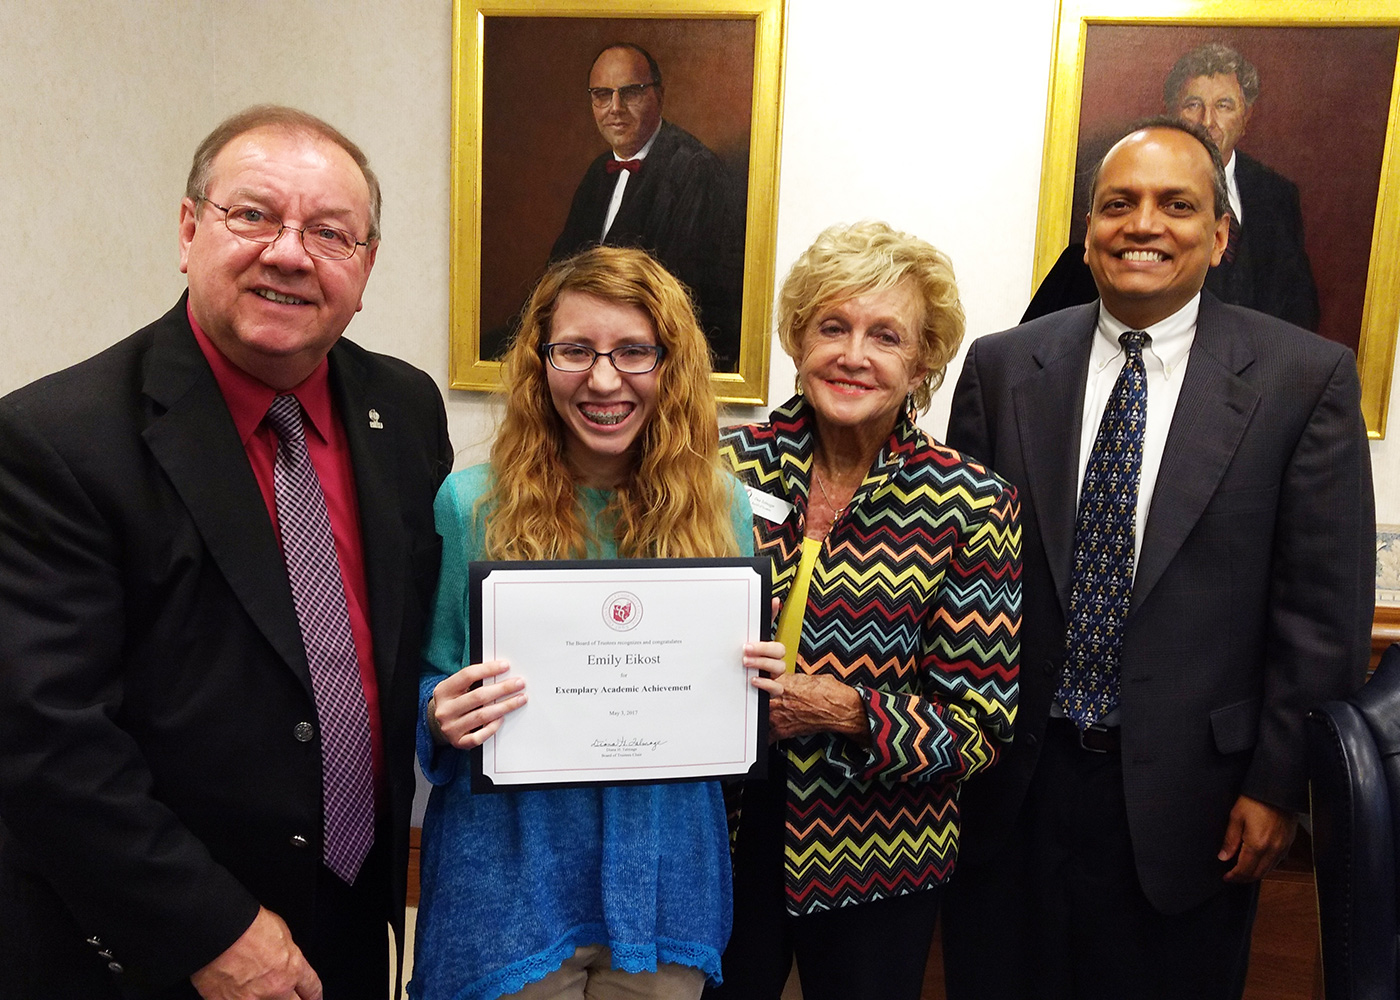 Student Life Committee Recognizes Emily Eikost